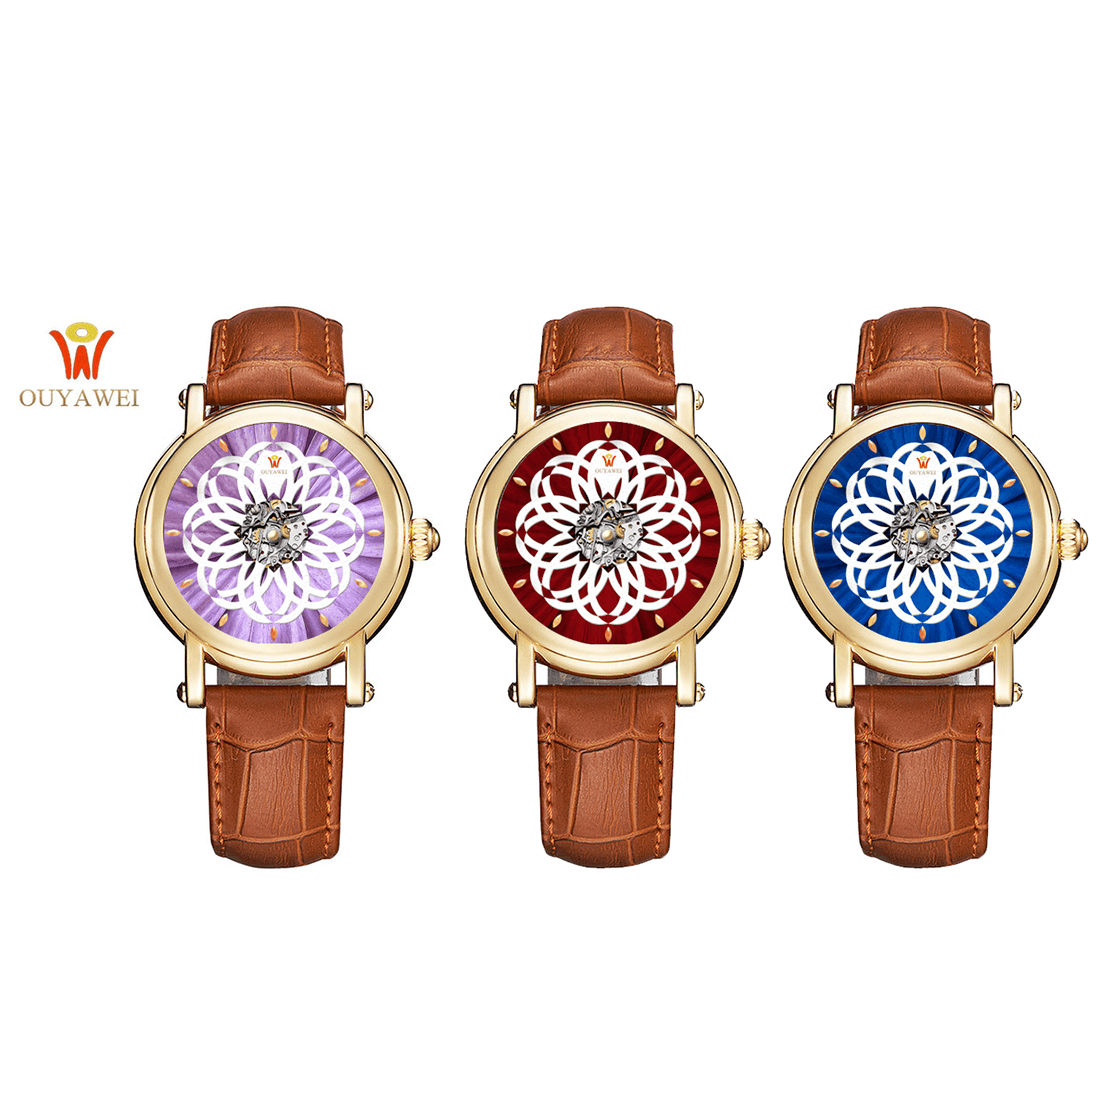 watch design by Ebtihal